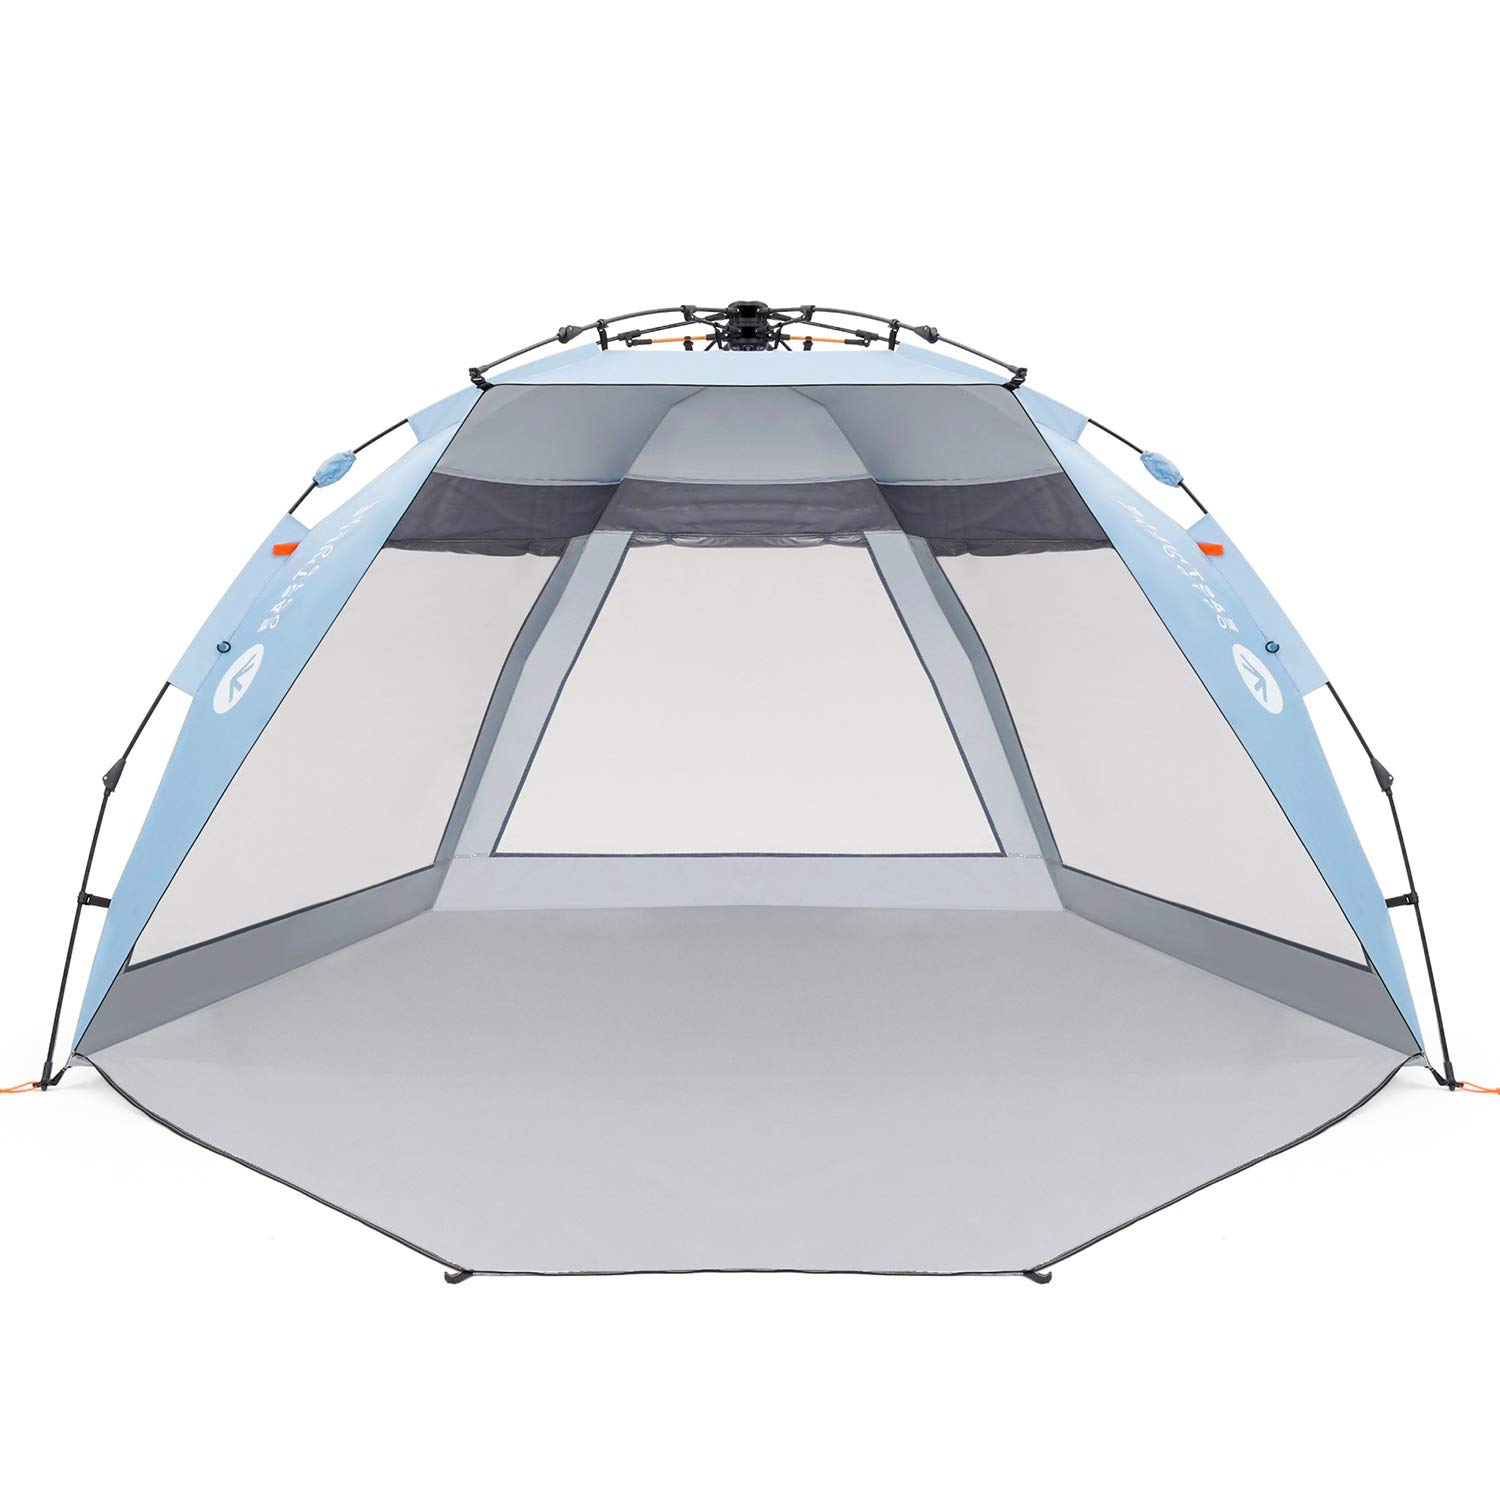 Easthills Outdoors Coastview Ultra 4-5 Person Family Sun Shelter Ultra Large Quick Setup Instant Anti UV Double Silver Coating Beach Tent with Extended Door & Window Sky Blue by Easthills Outdoors